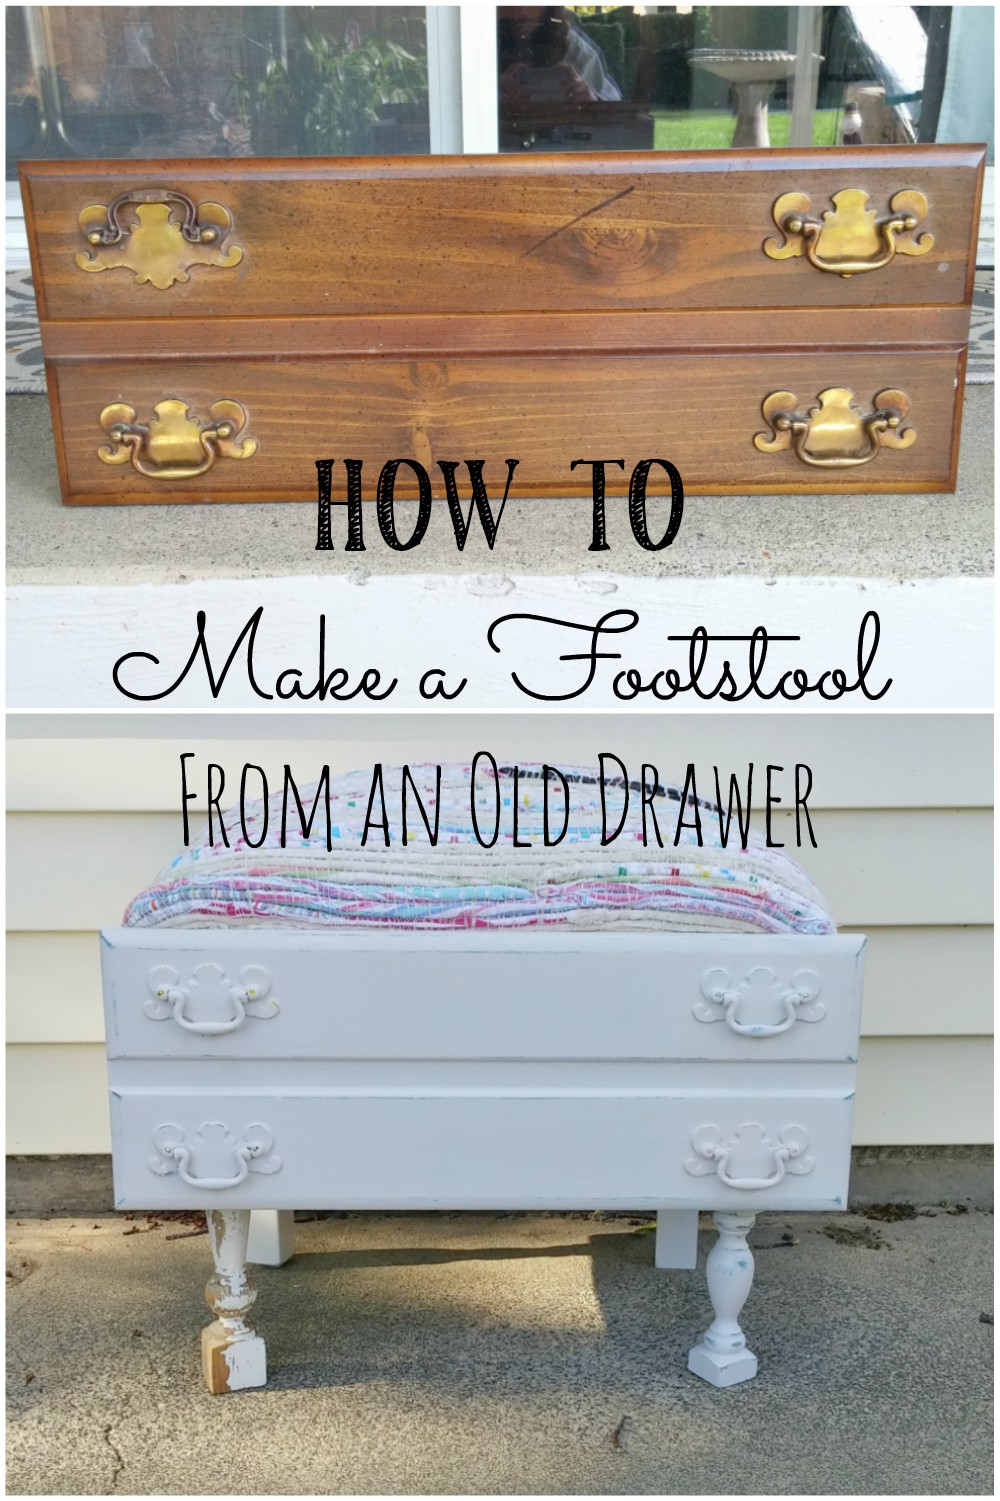 Make an adorable little footstool from an old drawer!